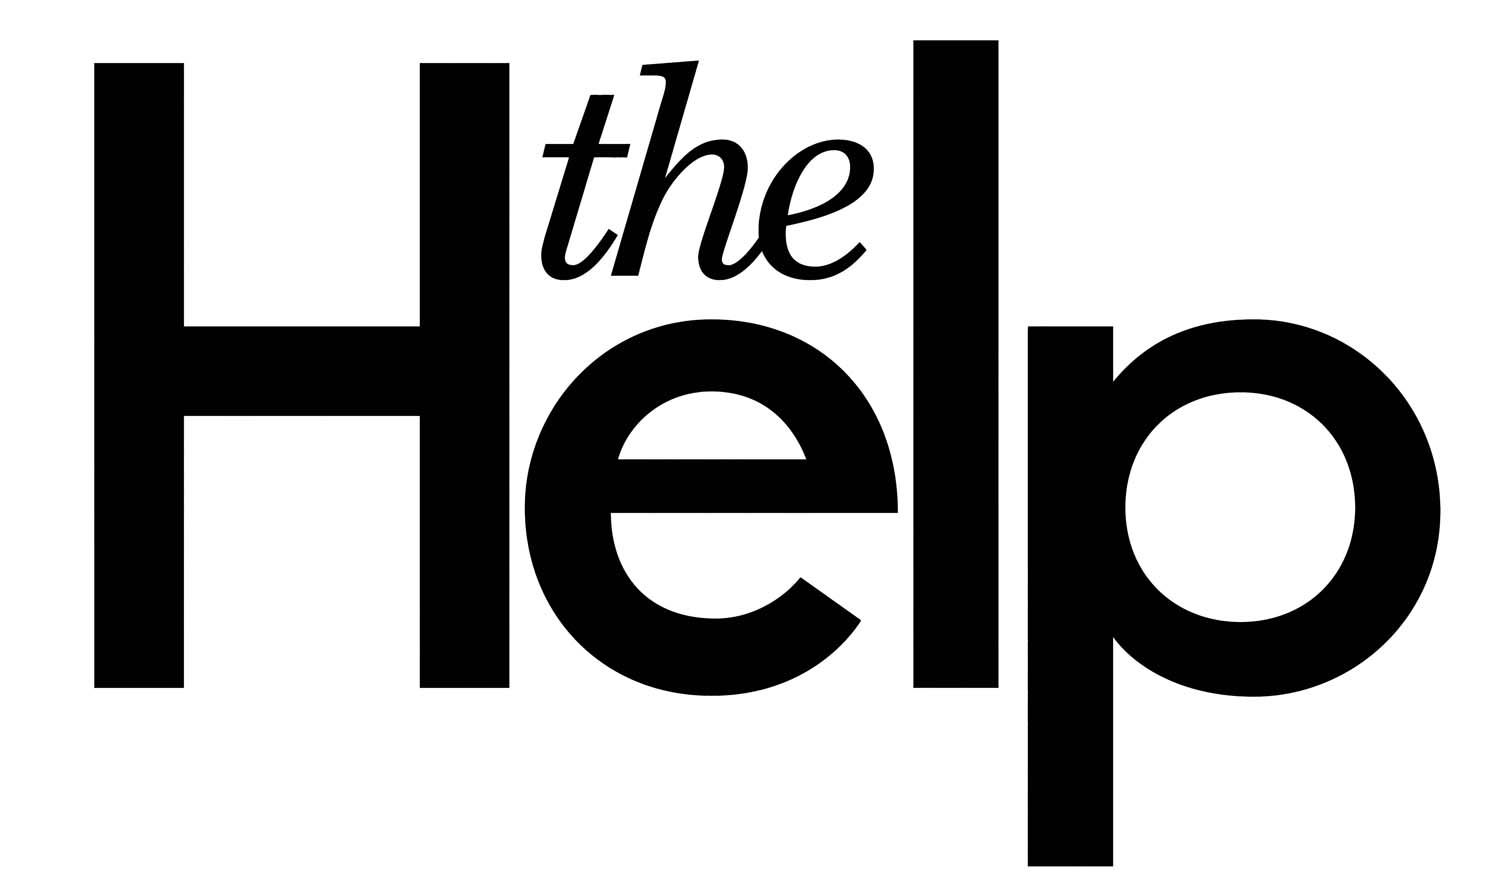 skeeter phelan analysis The help is a 2009 novel by the life constantine led while being the help to the phelan family leads skeeter to the realization that her friends' maids are.